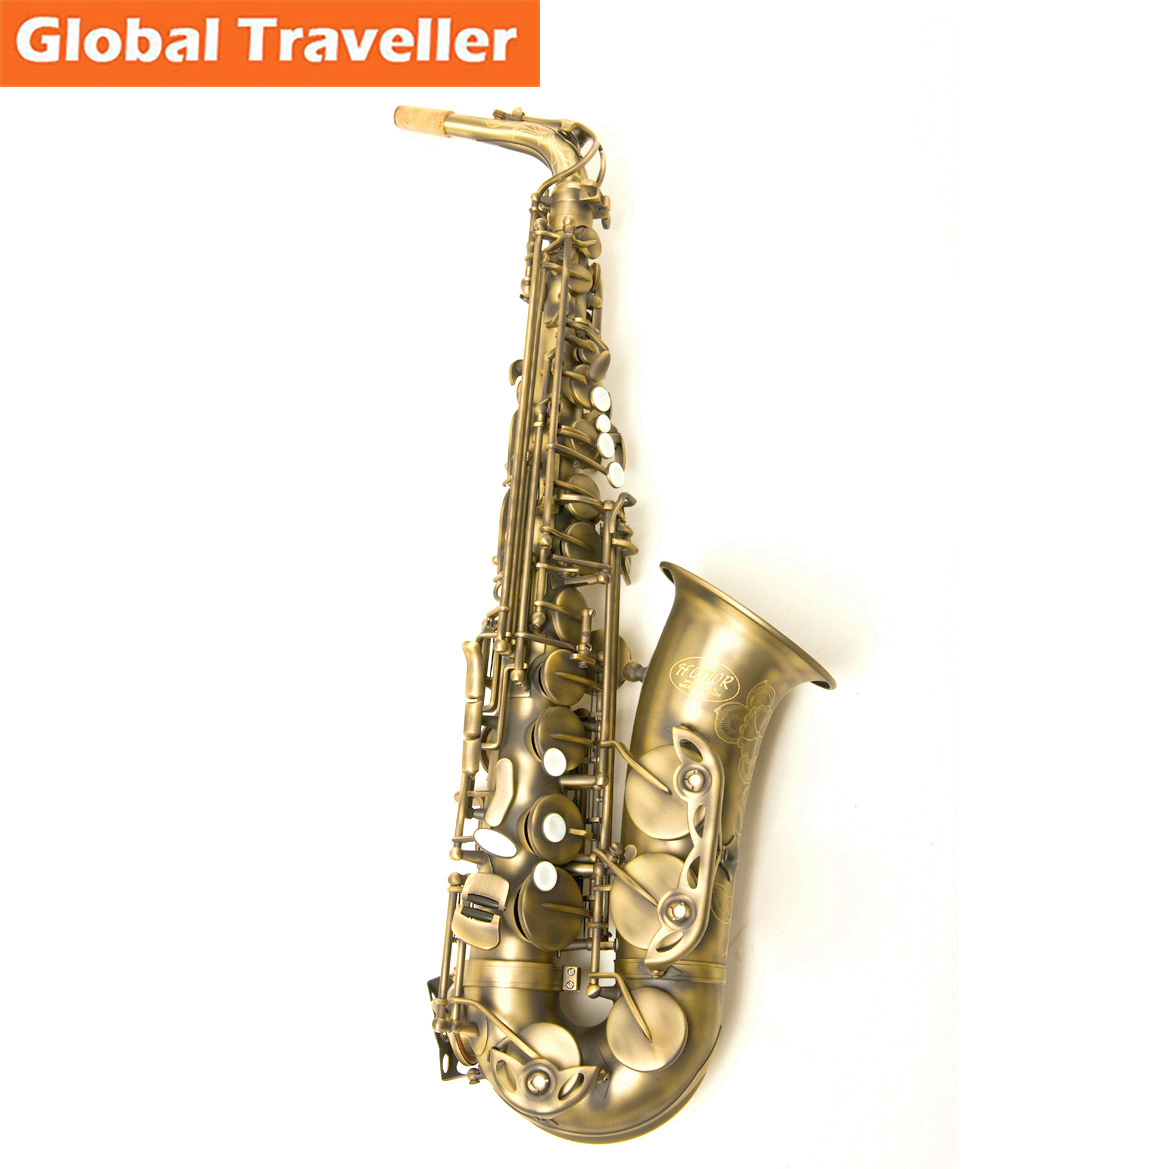 Antique copper Eb Alto Sax Eb Alto Saxophone E flat Sax Woodwind instruments Jazz Sax Blues Pop Classical saxophone style alto saxophone new eb selmer silver alto saxophone plated brass musical instruments professional saxophone alto sax e flat